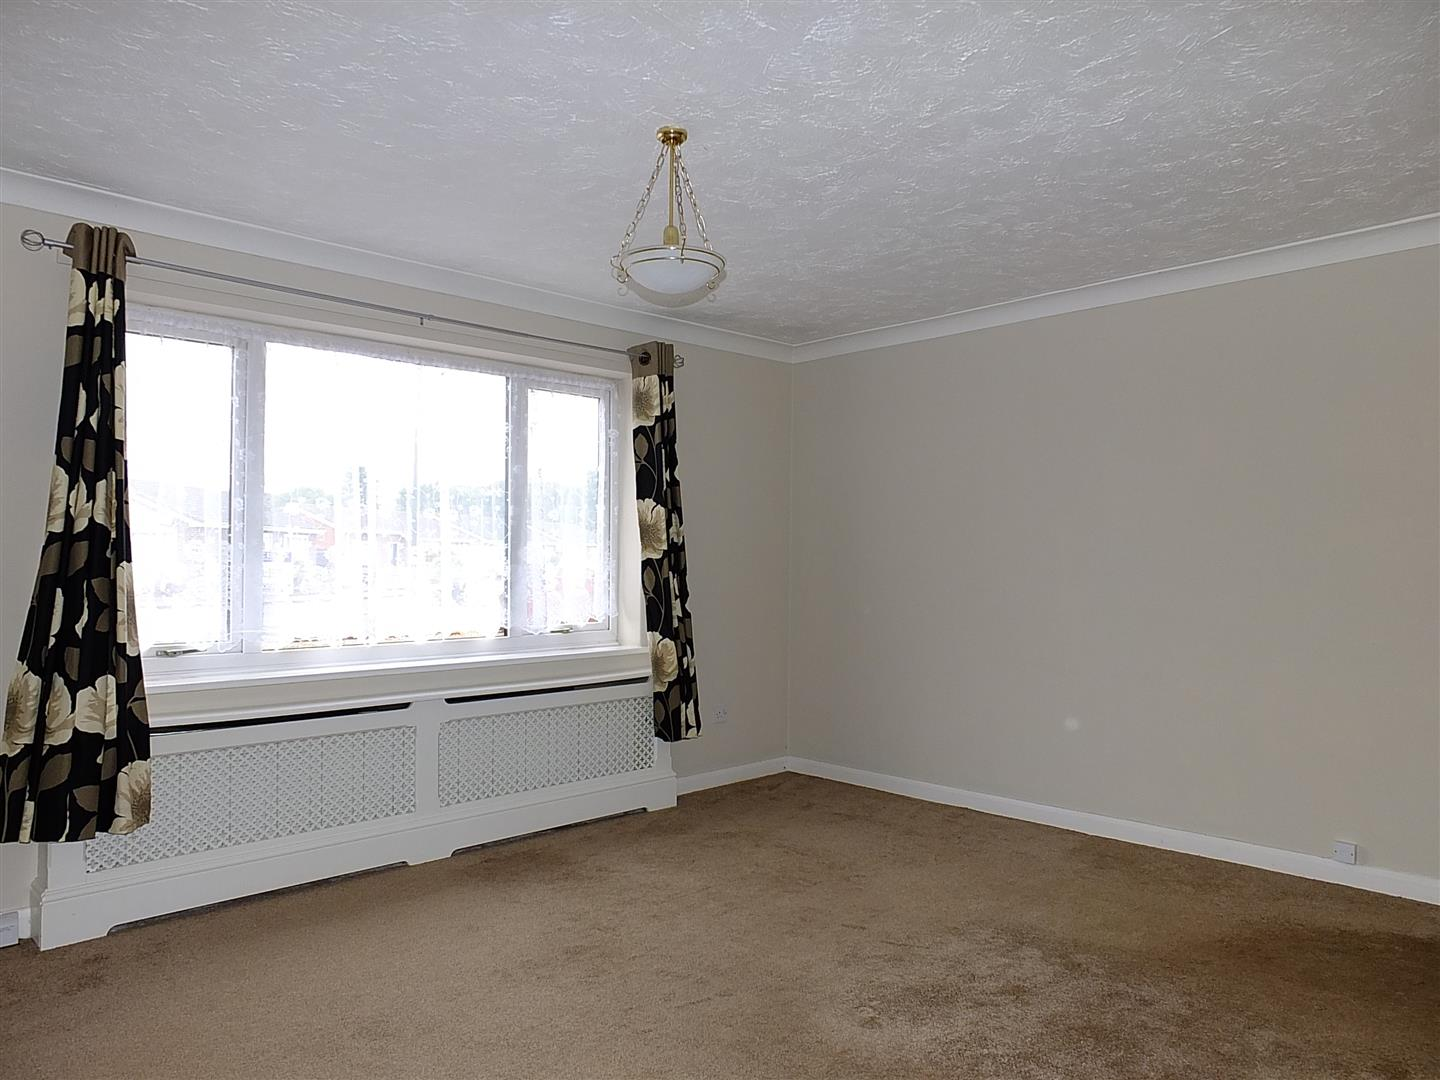 3 bed detached bungalow to rent in Long Sutton Spalding, PE12 9LY 3